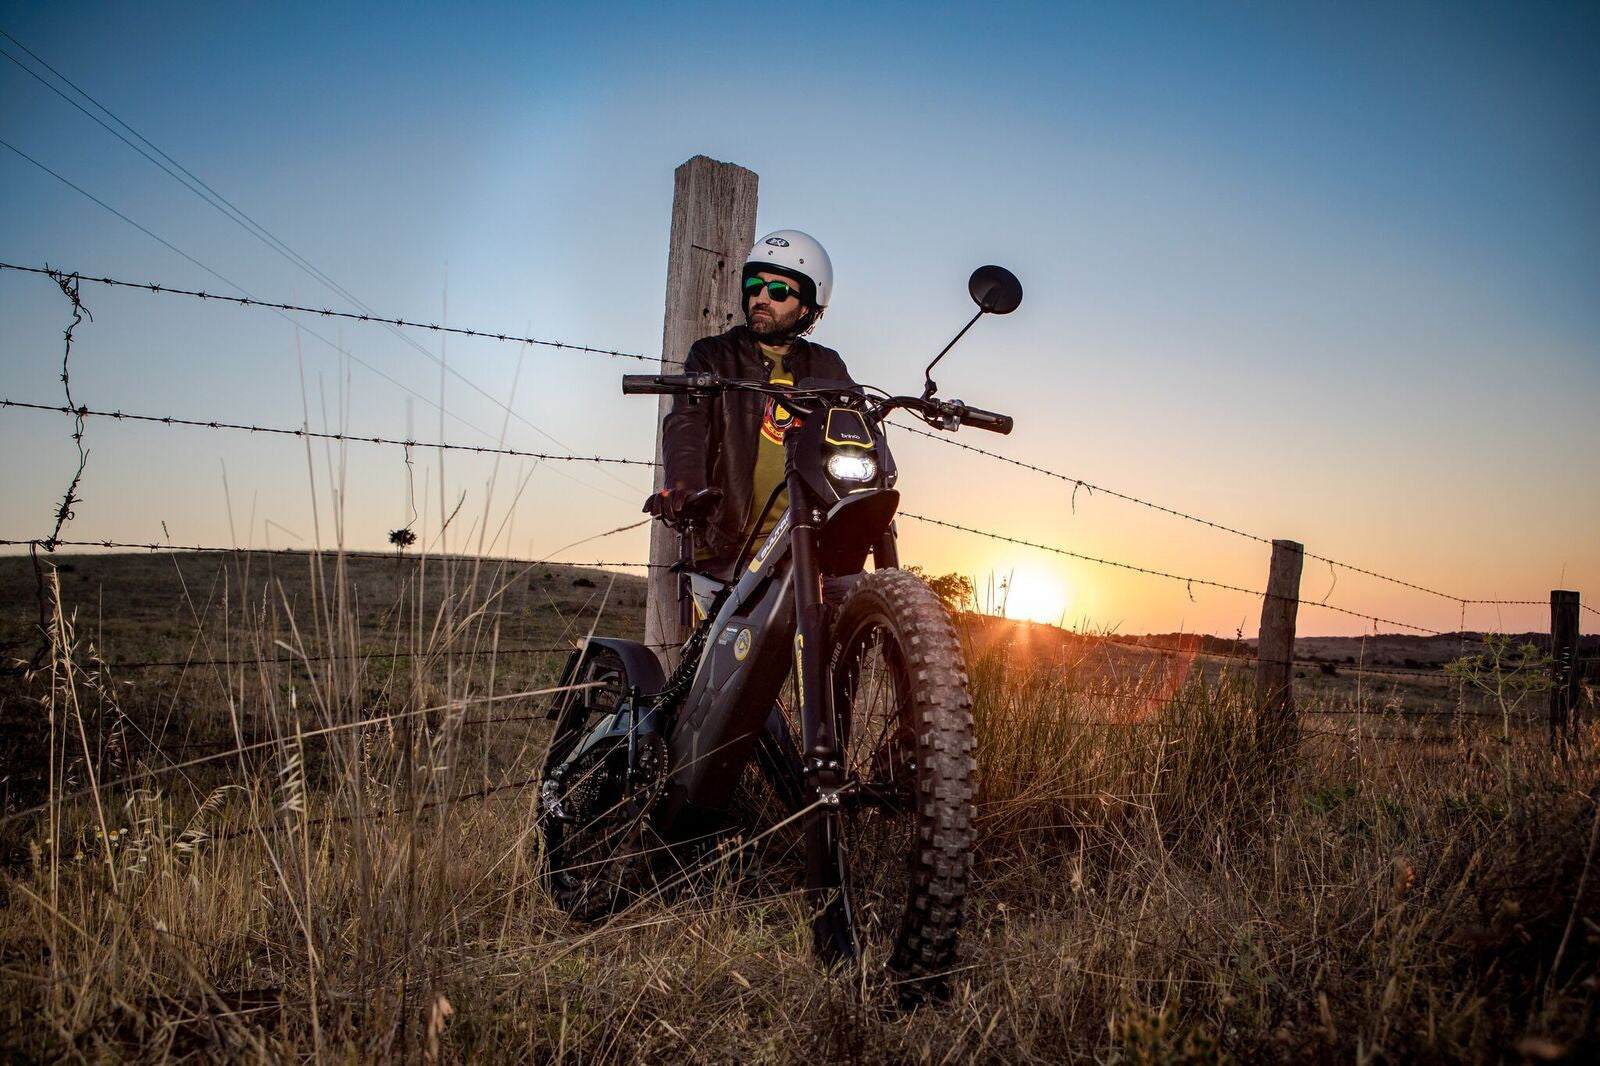 Bultaco Brinco C Restyle Night Time Shoot 2